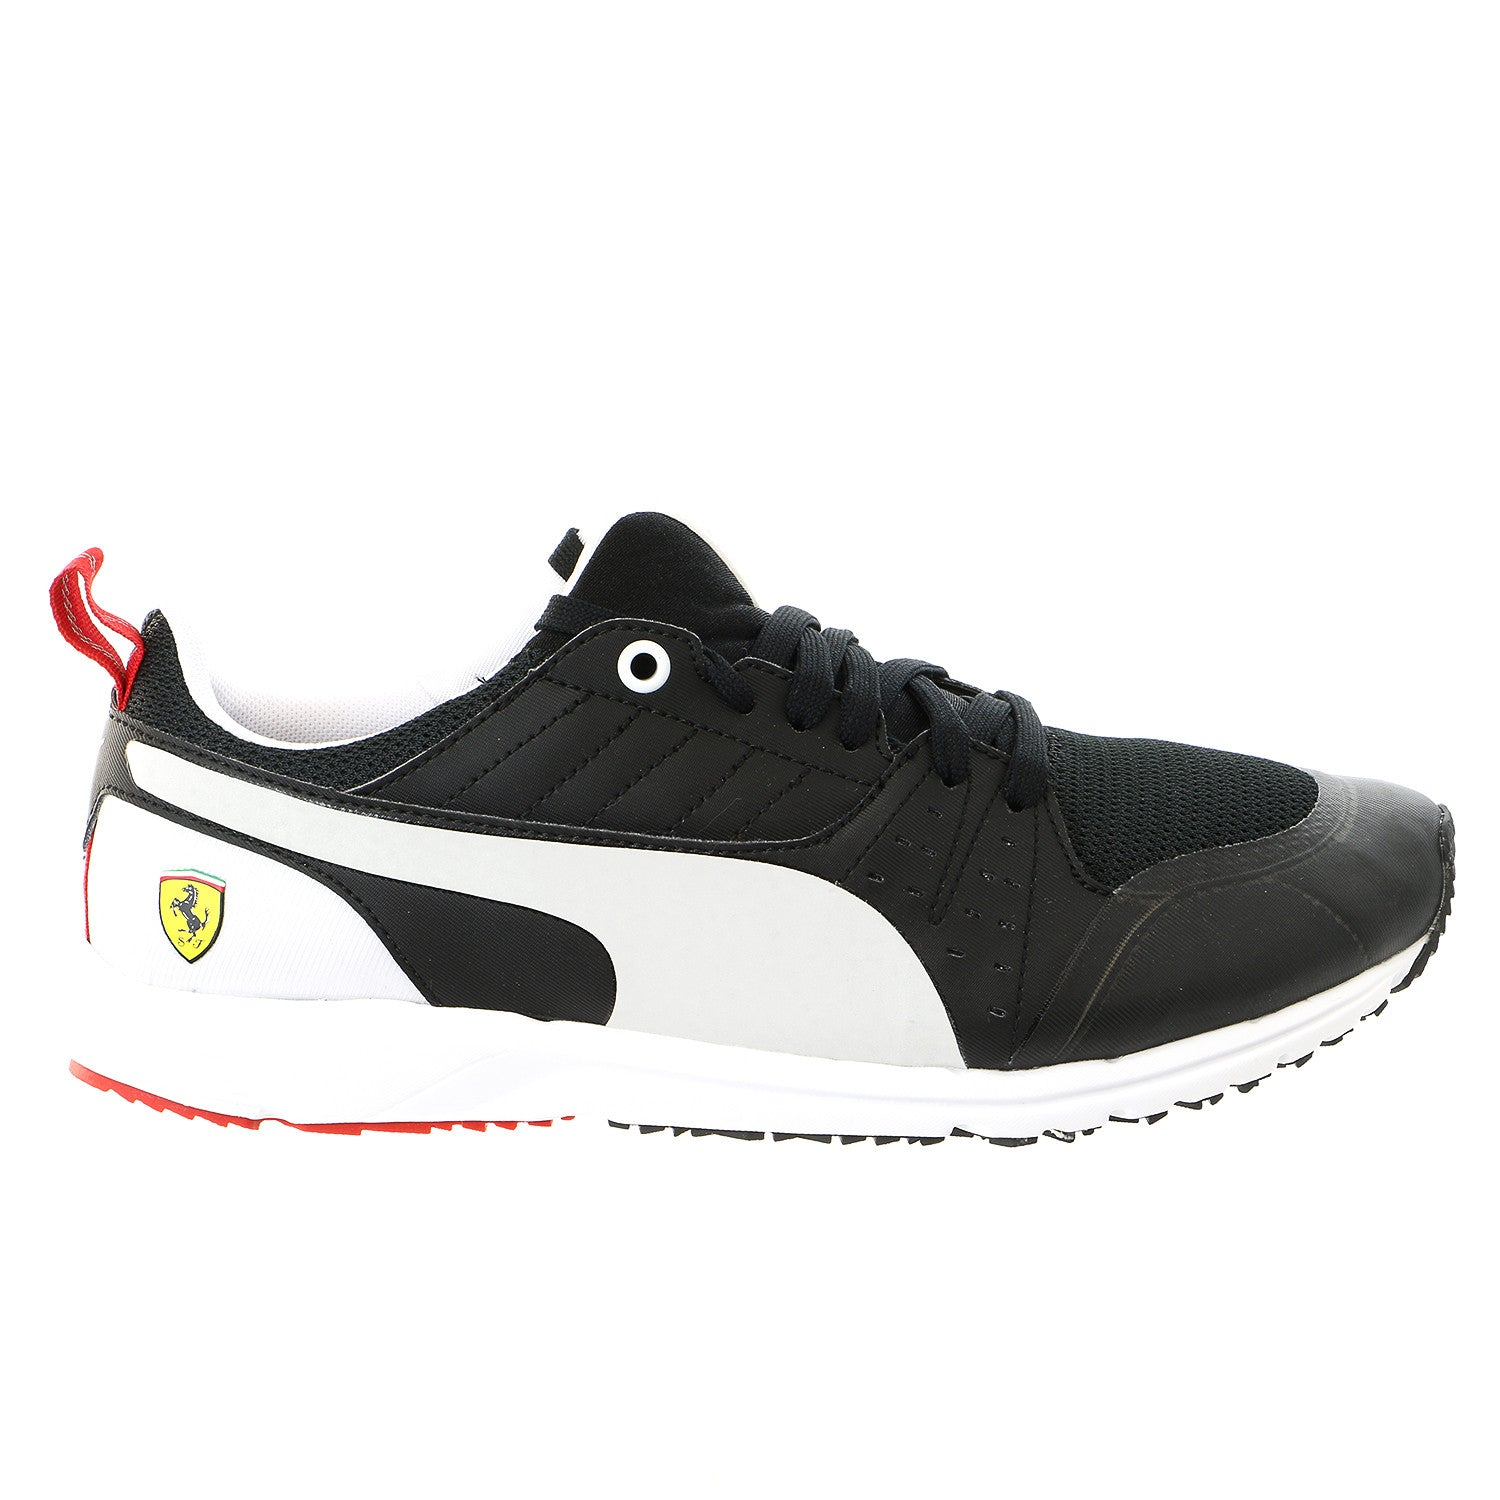 d9592cff3c7 ... france puma pitlane scuderia ferrari night cat fashion sneaker shoe  black white mens 68e92 908a7